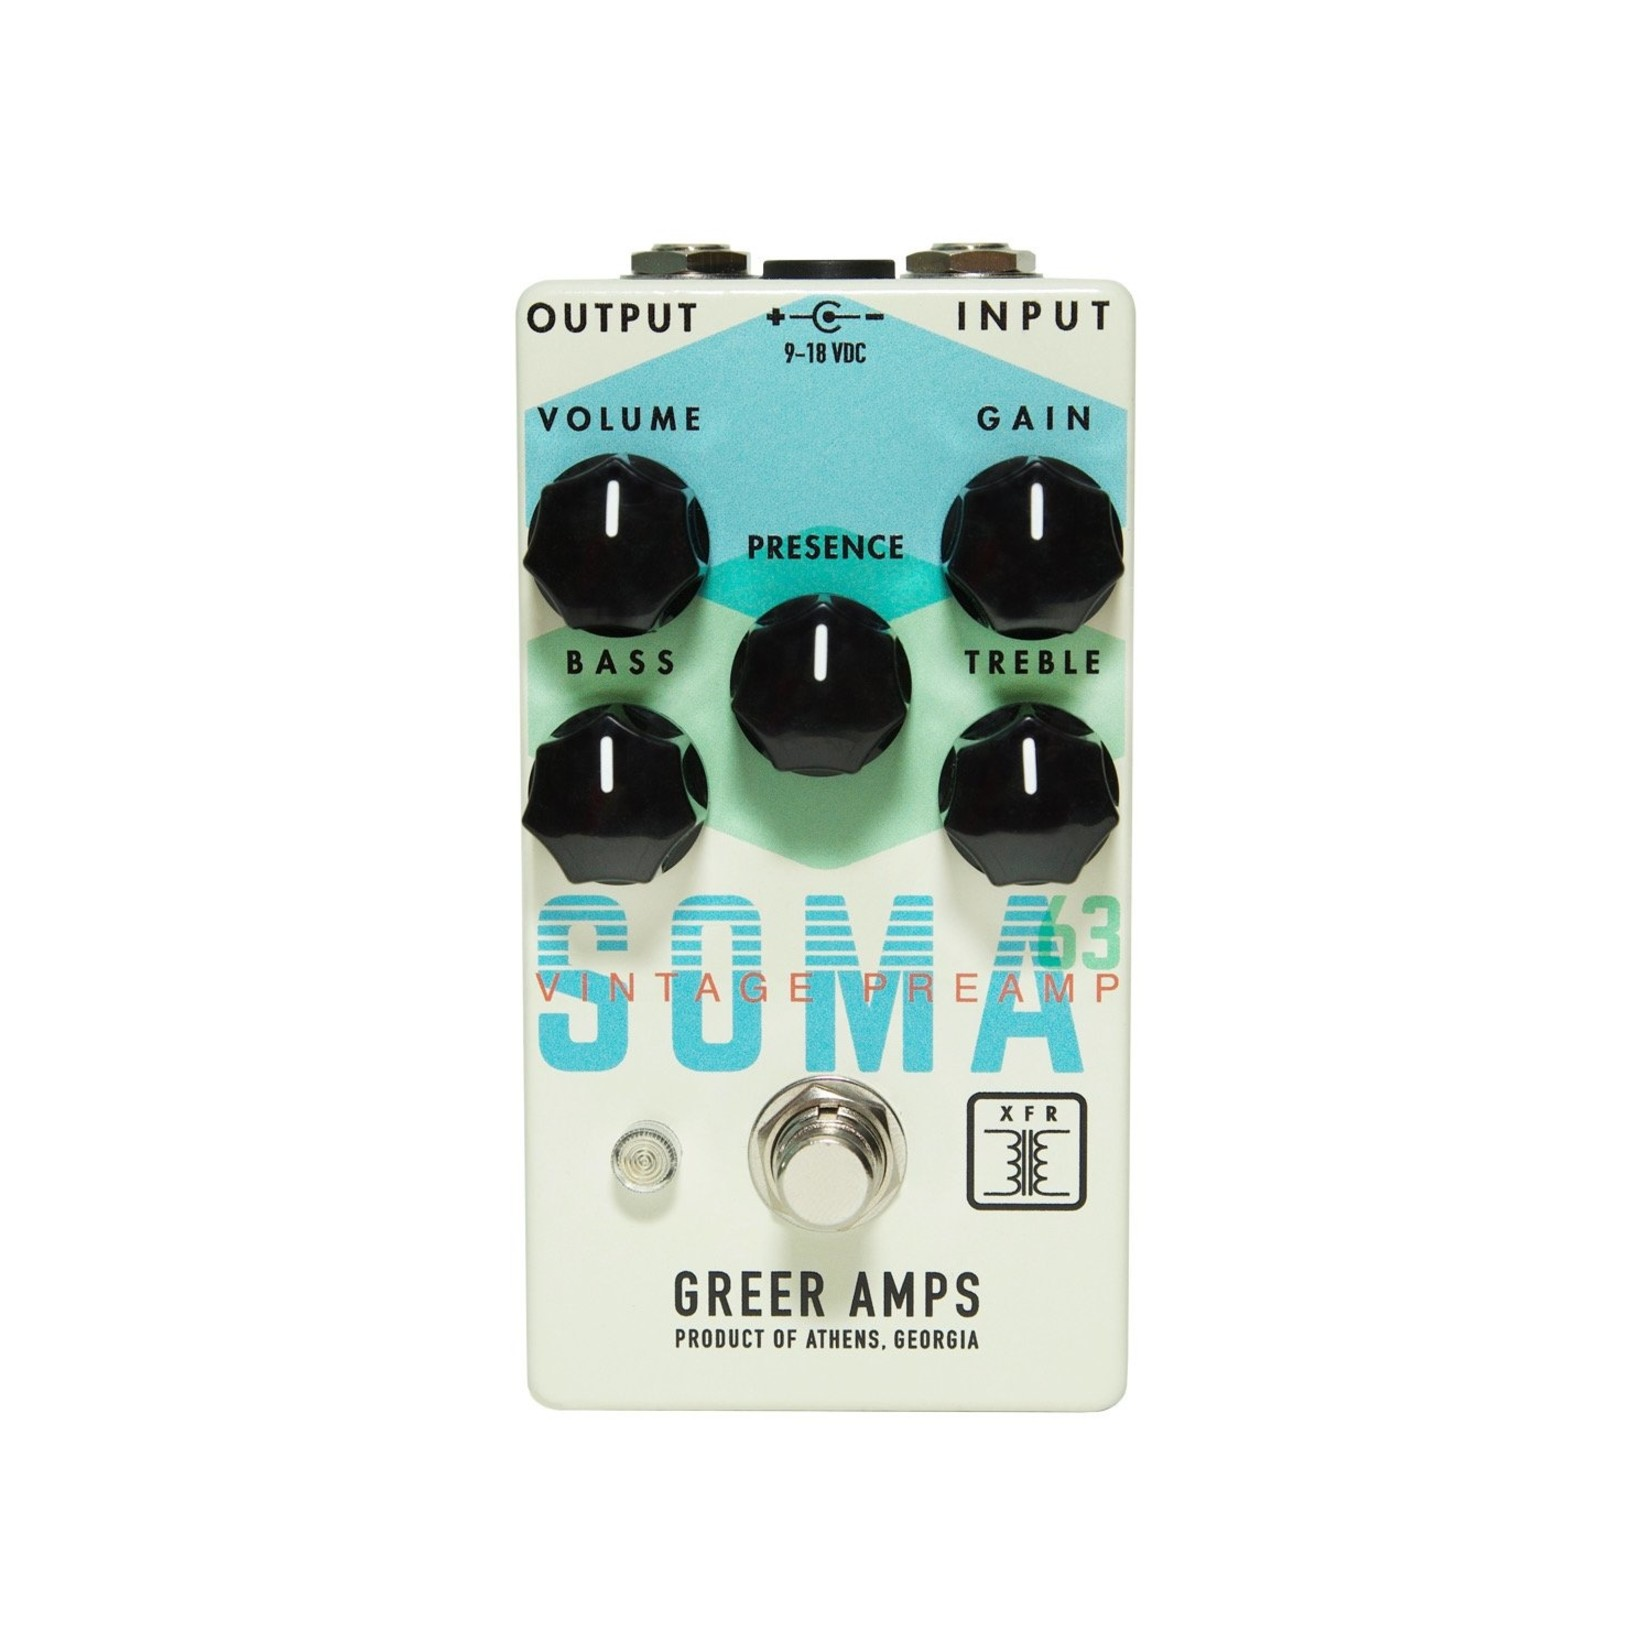 Greer Amps Greer Amps Soma 63 Overdrive Pedal